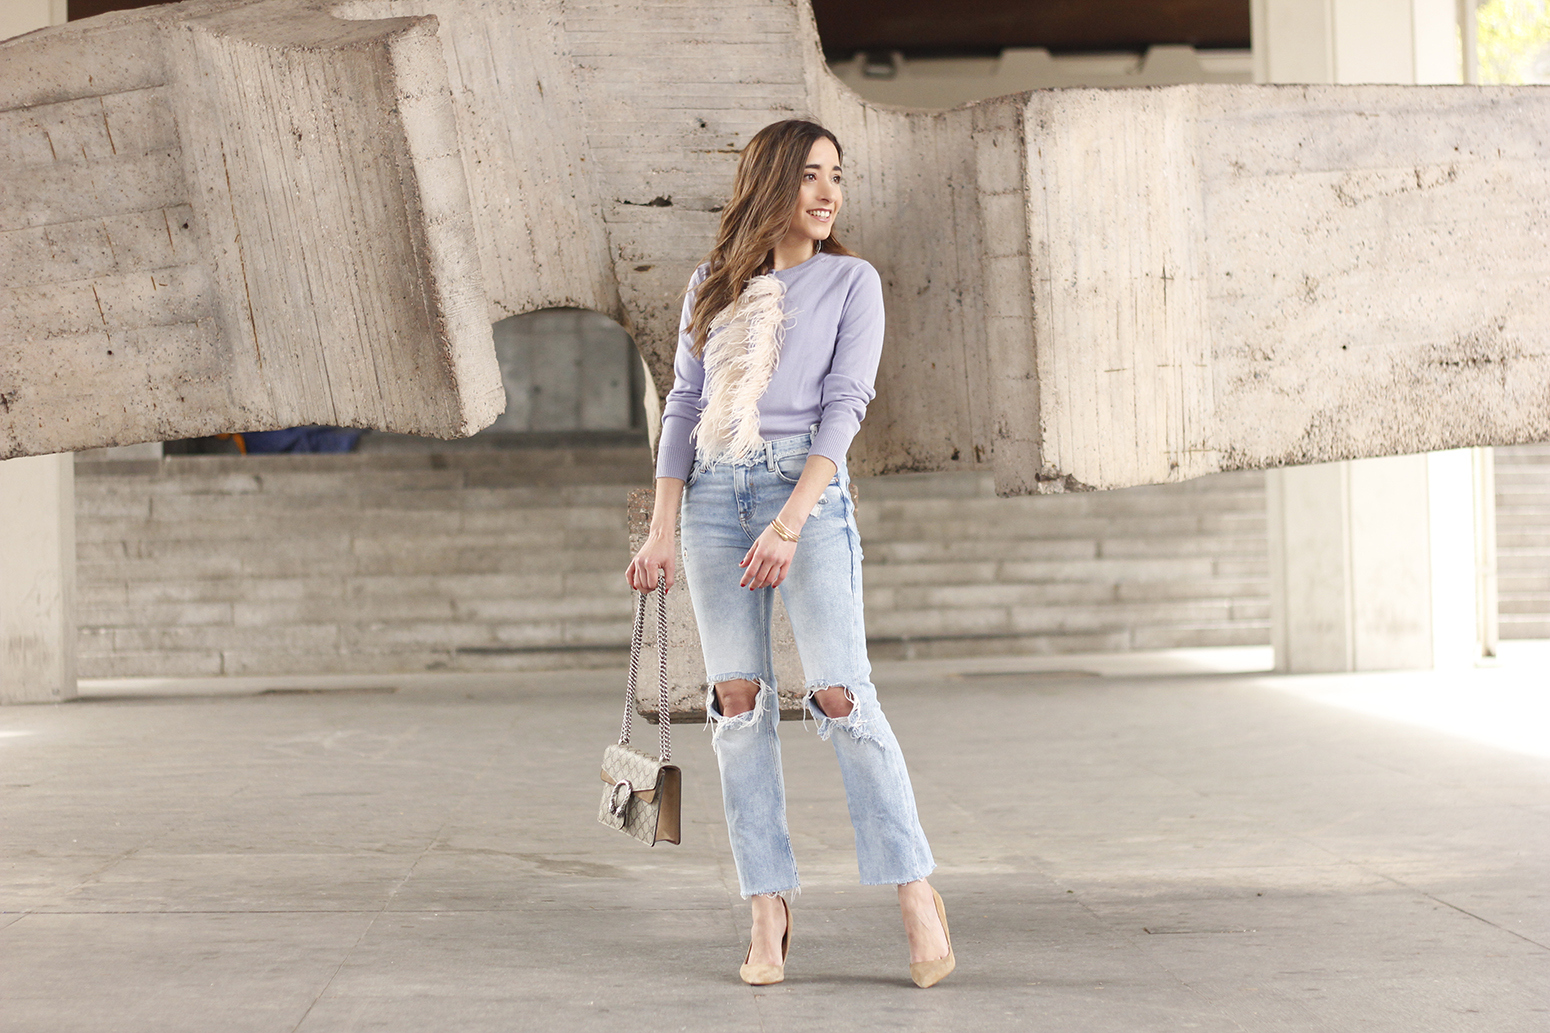 lavender sweater ripped jeans gucci bag nude heels casual street style casual outfit 20195